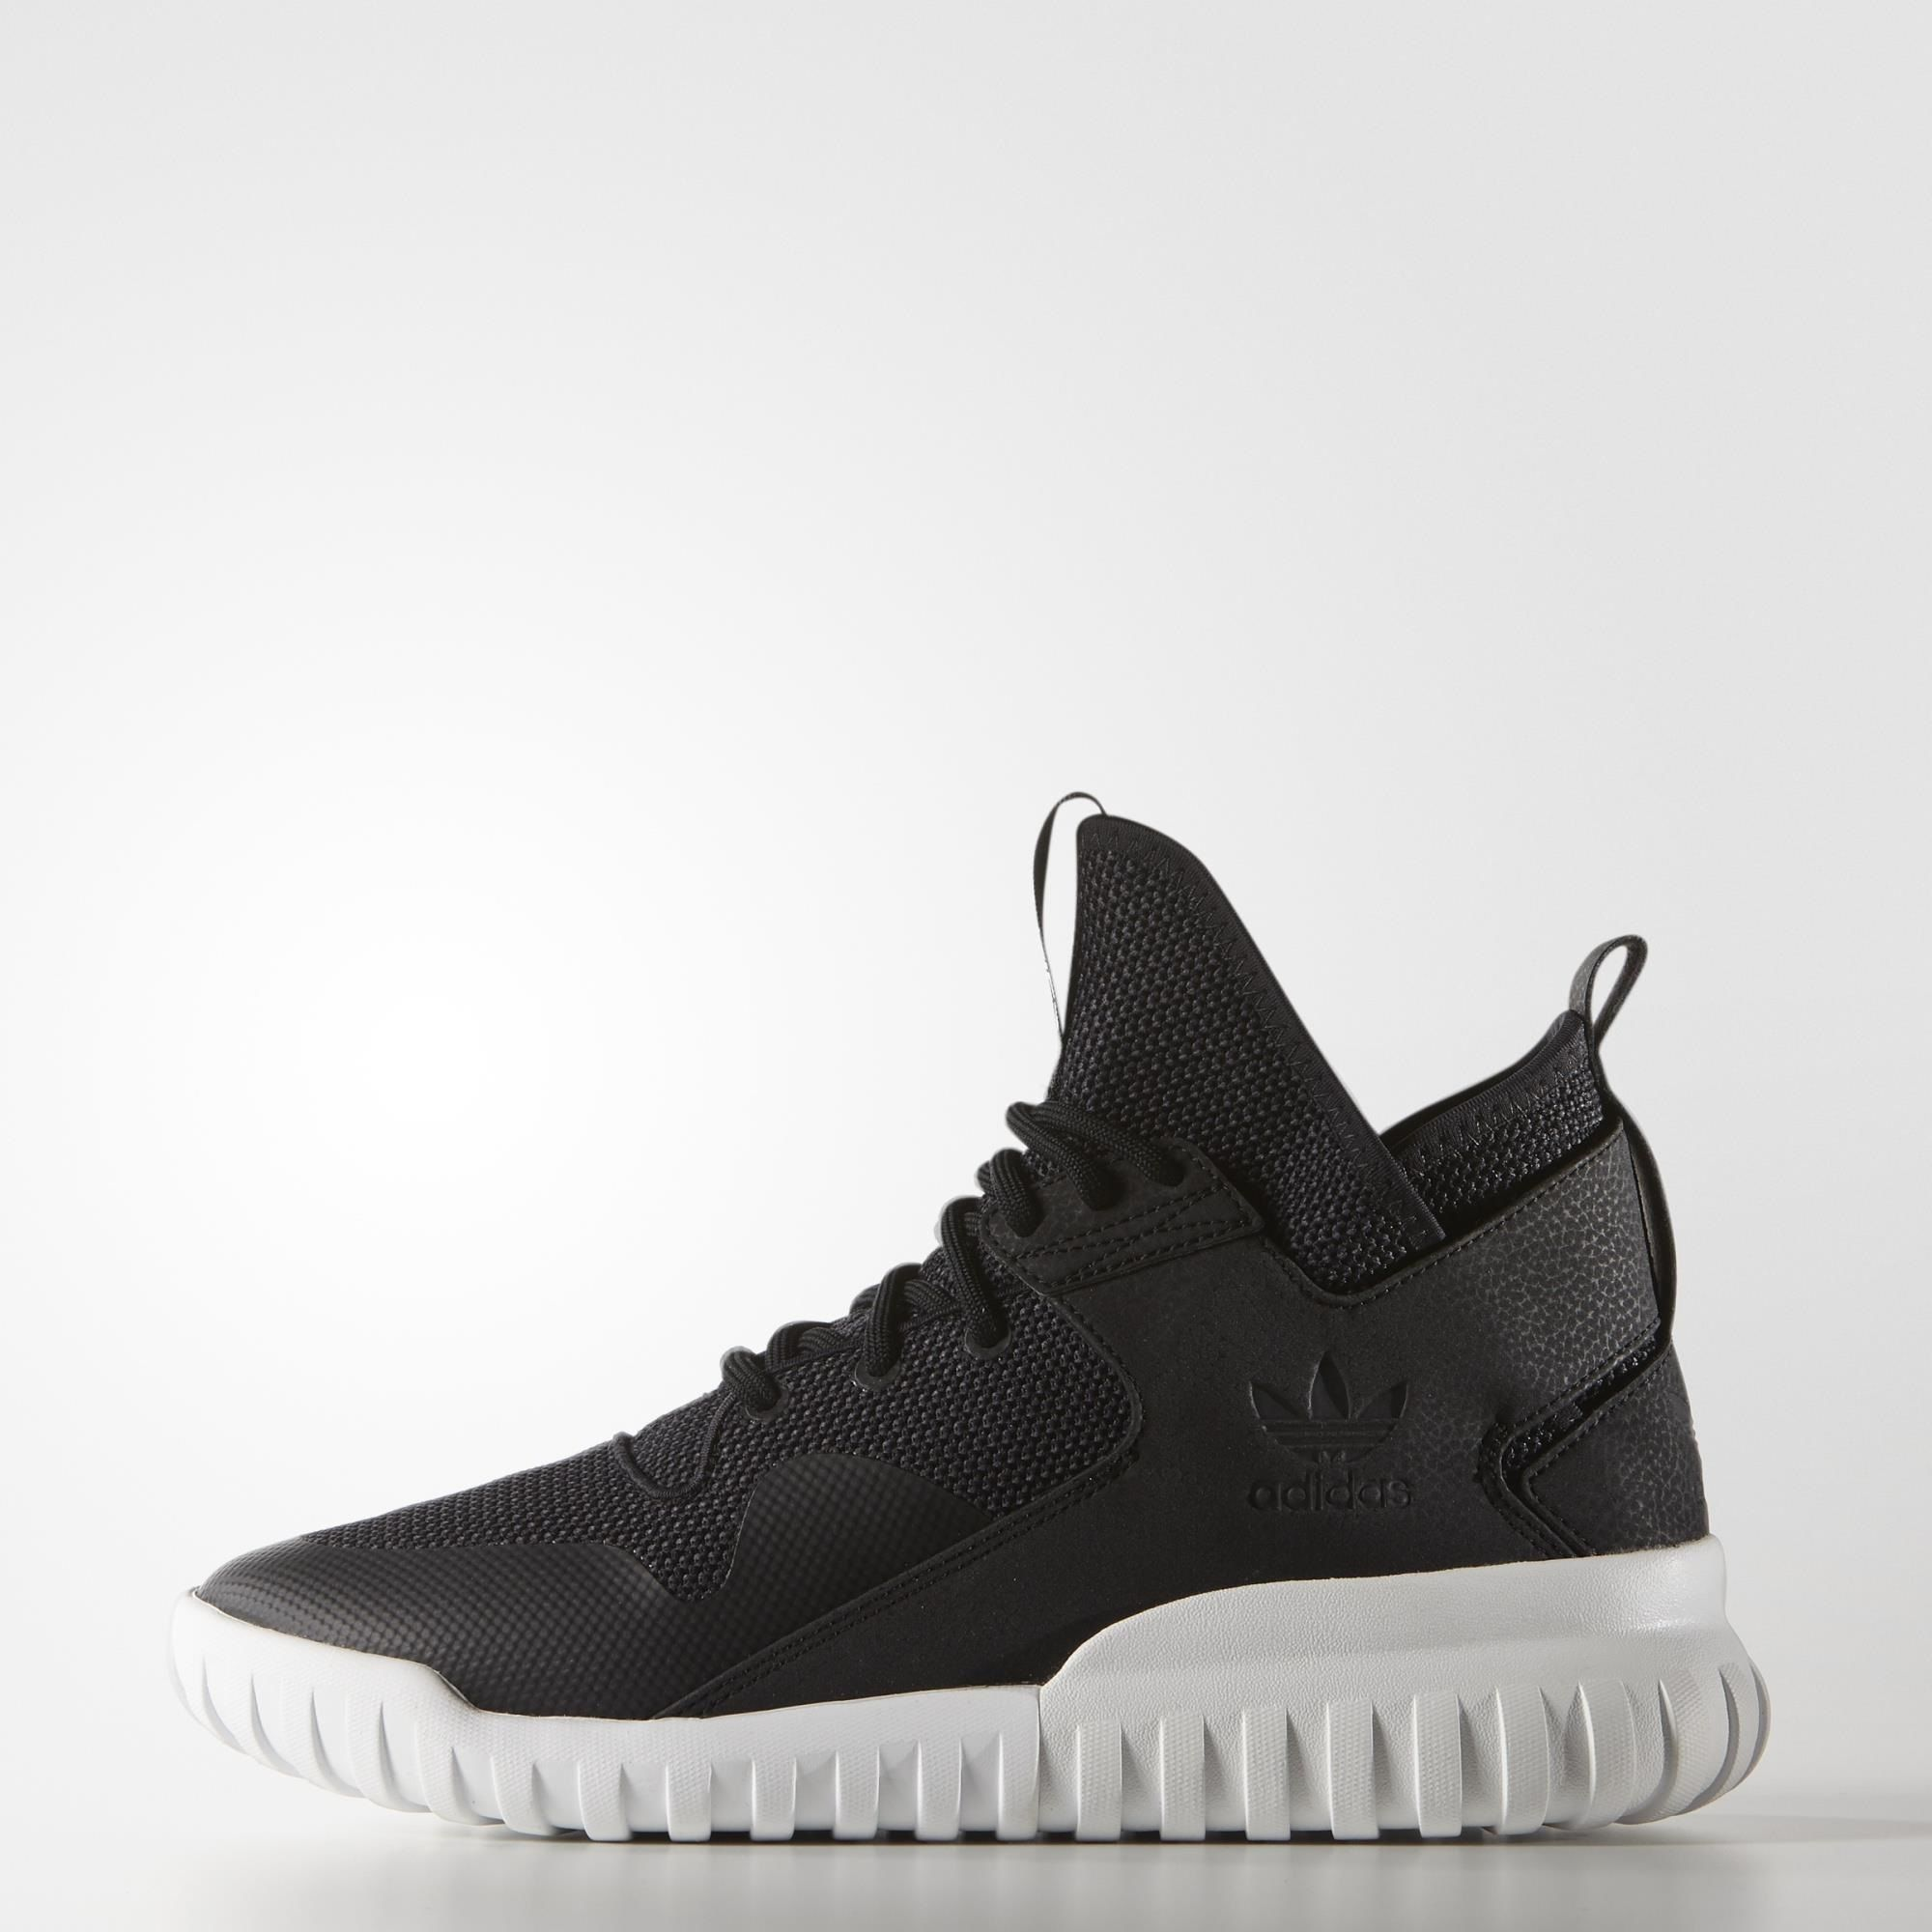 Footwear · adidas Tubular X Shoes - Black ...